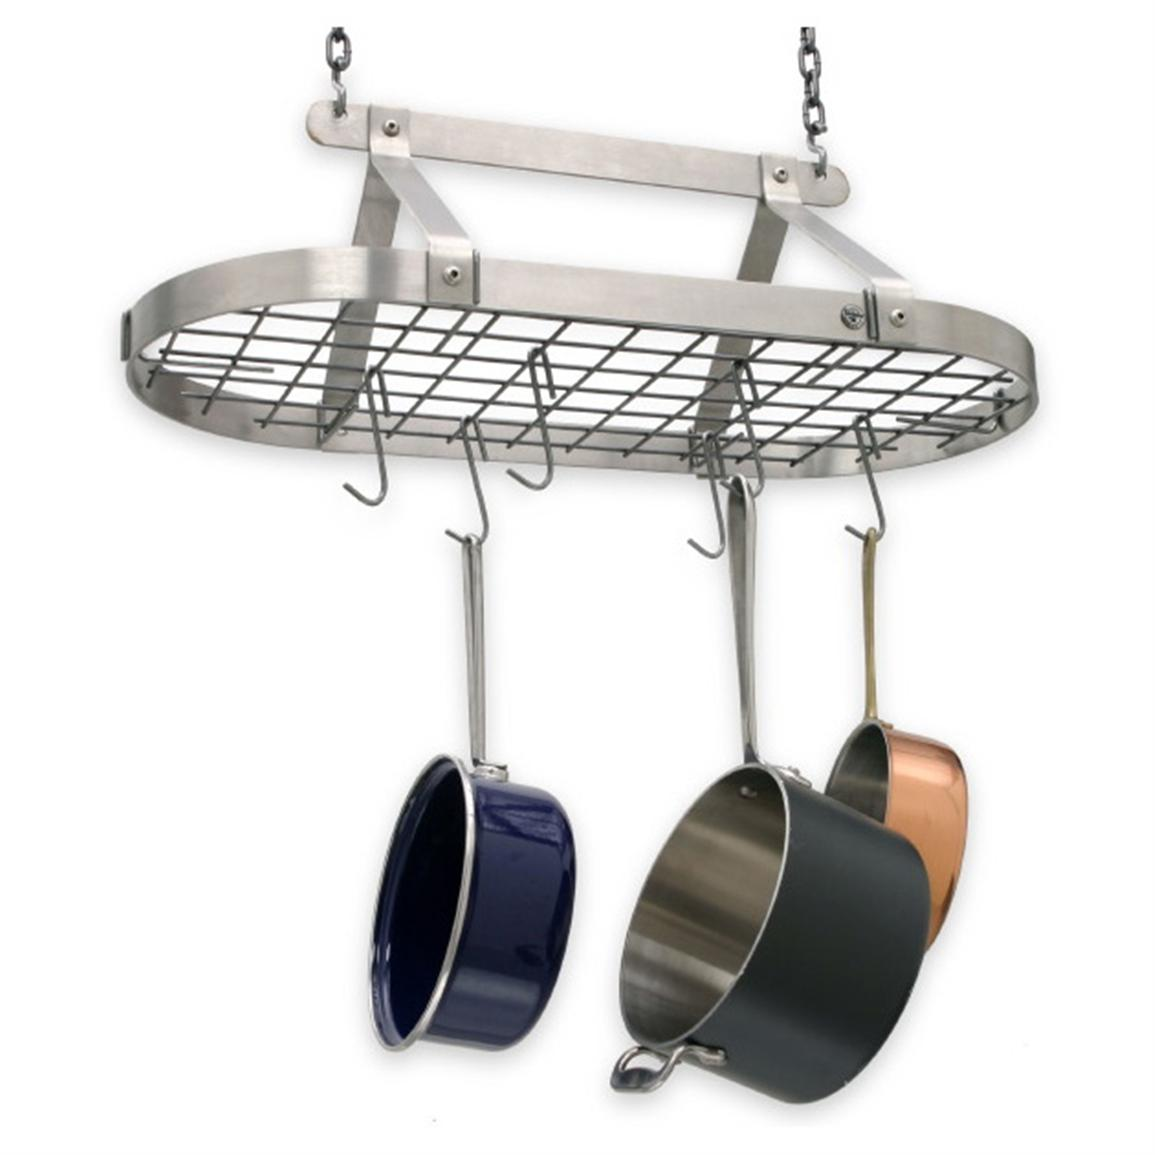 Enclume decor classic stainless steel hanging pot rack Pot and pan rack